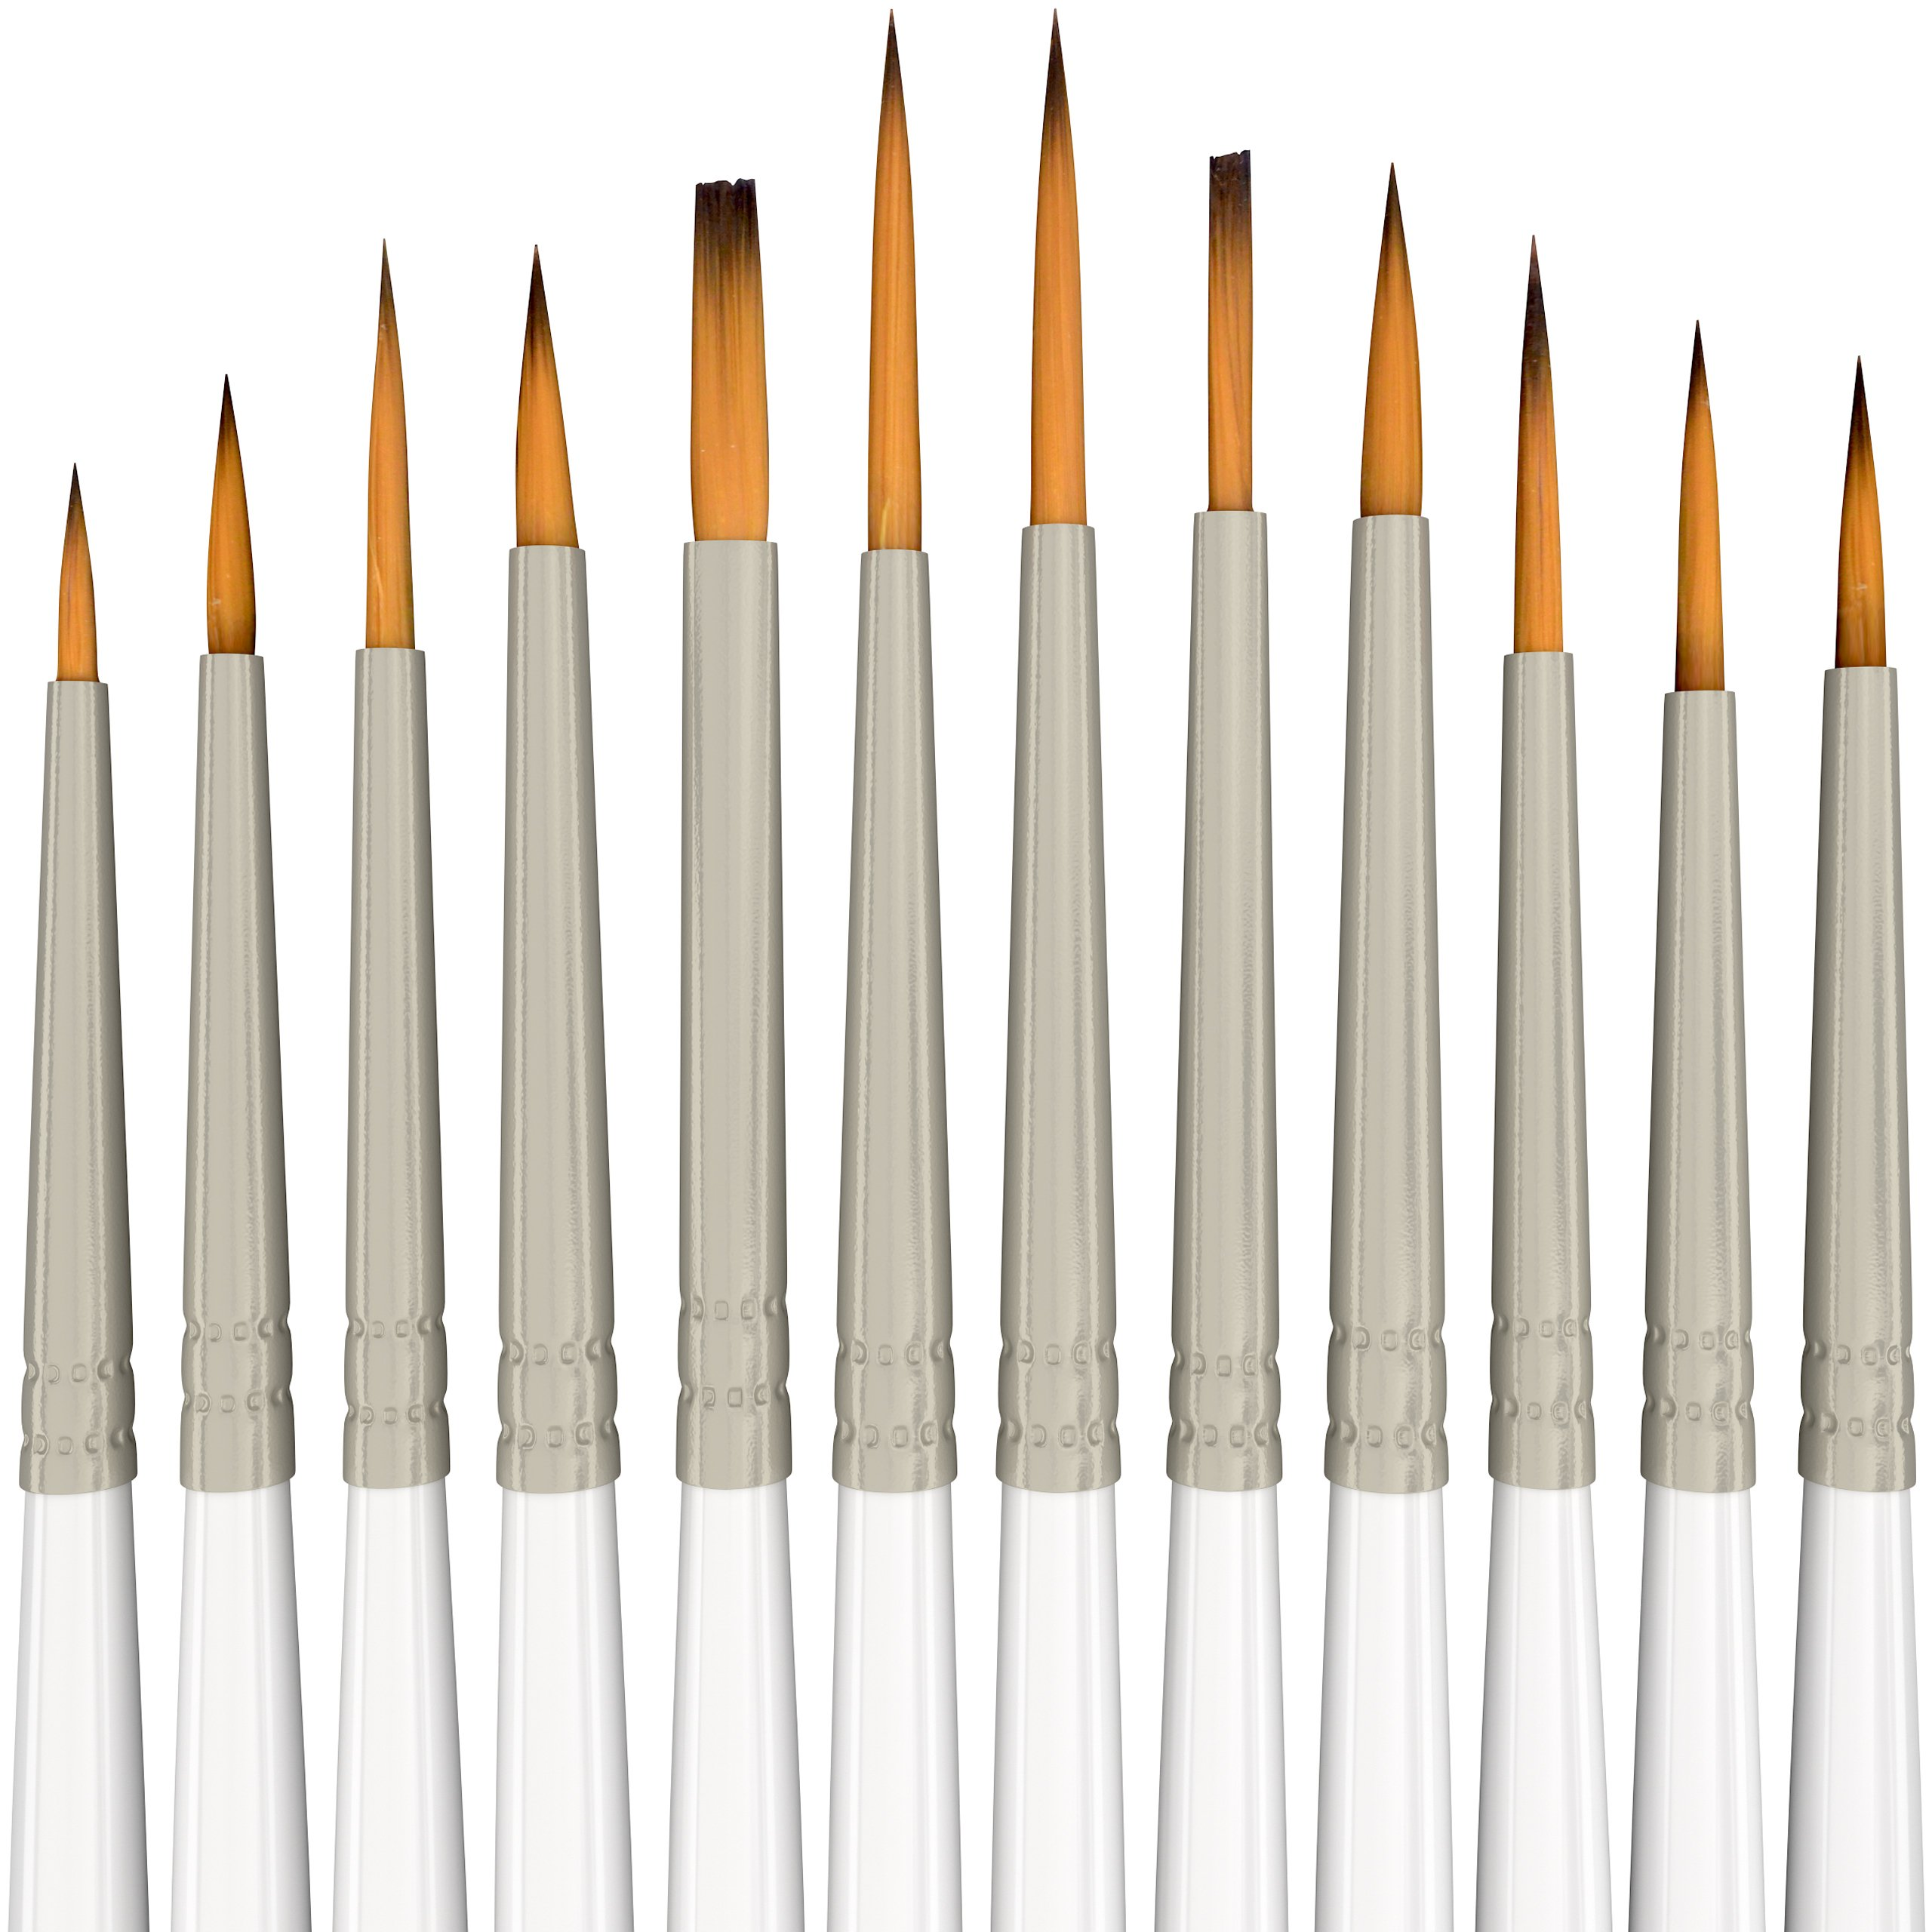 Detail Paint Brush Set - 12 Miniature Brushes for Fine Detailing & Art Painting - Acrylic, Watercolor, Gouache, Oil - Models, Airplane Kits, Ink, Warhammer 40k - Artist Quality Supplies by MyArtscape by MyArtscape